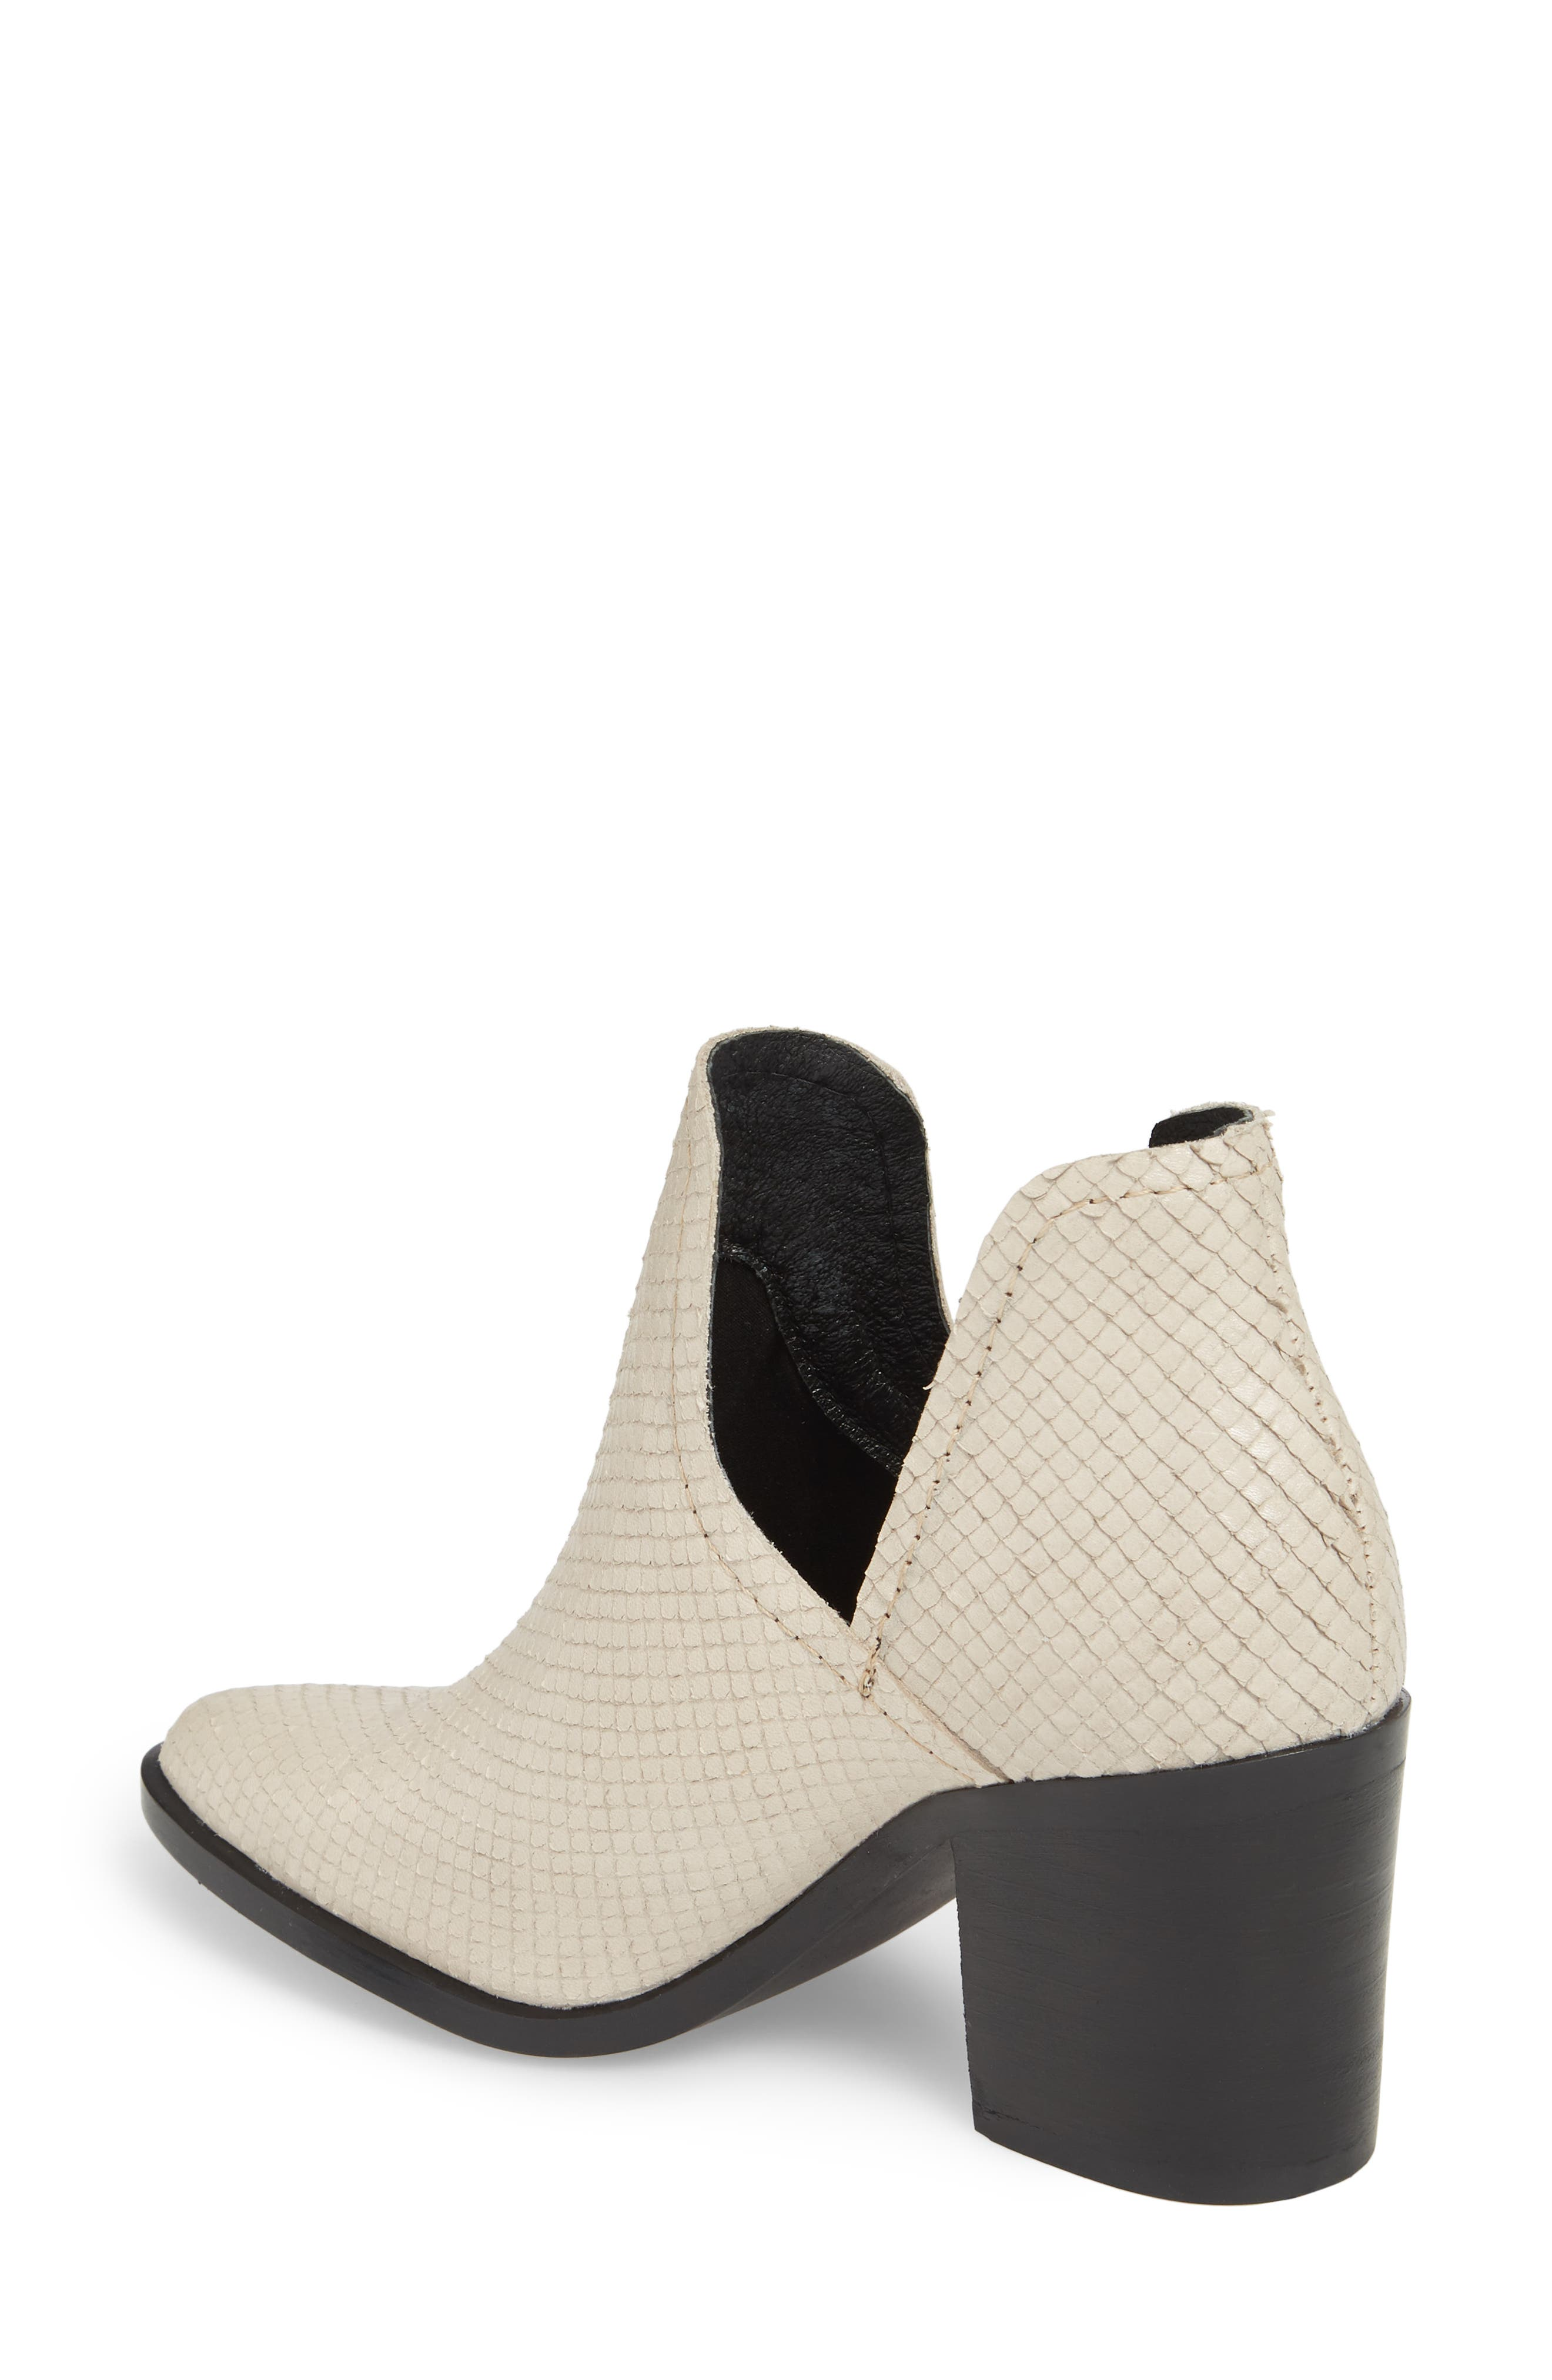 Petra Open Side Bootie,                             Alternate thumbnail 2, color,                             White Snake Print